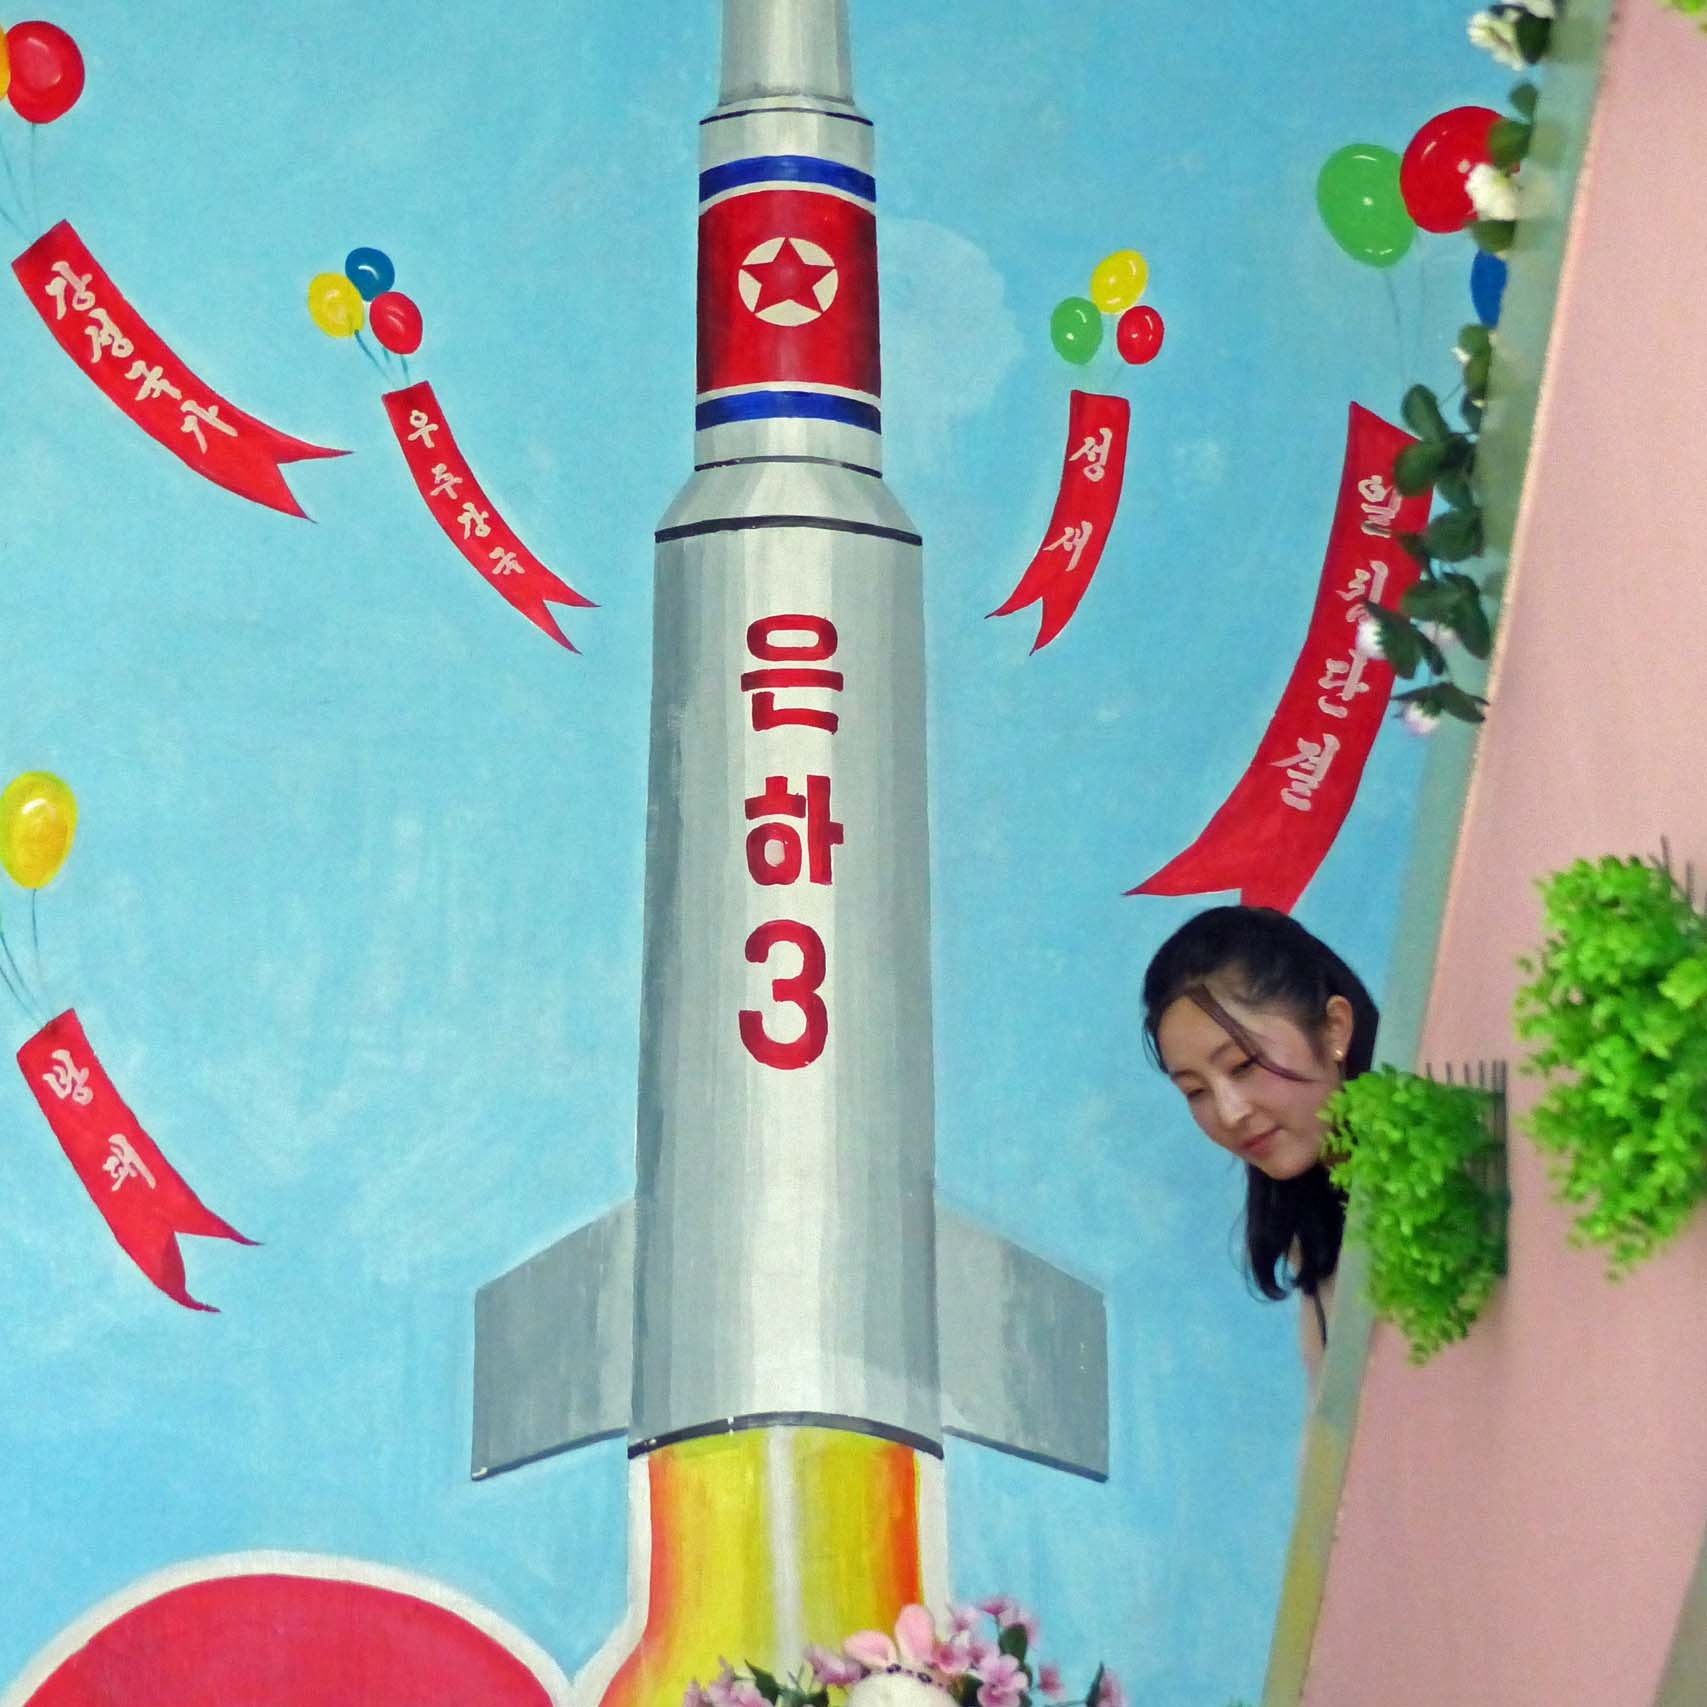 Bright wall painting of a ballistic missile